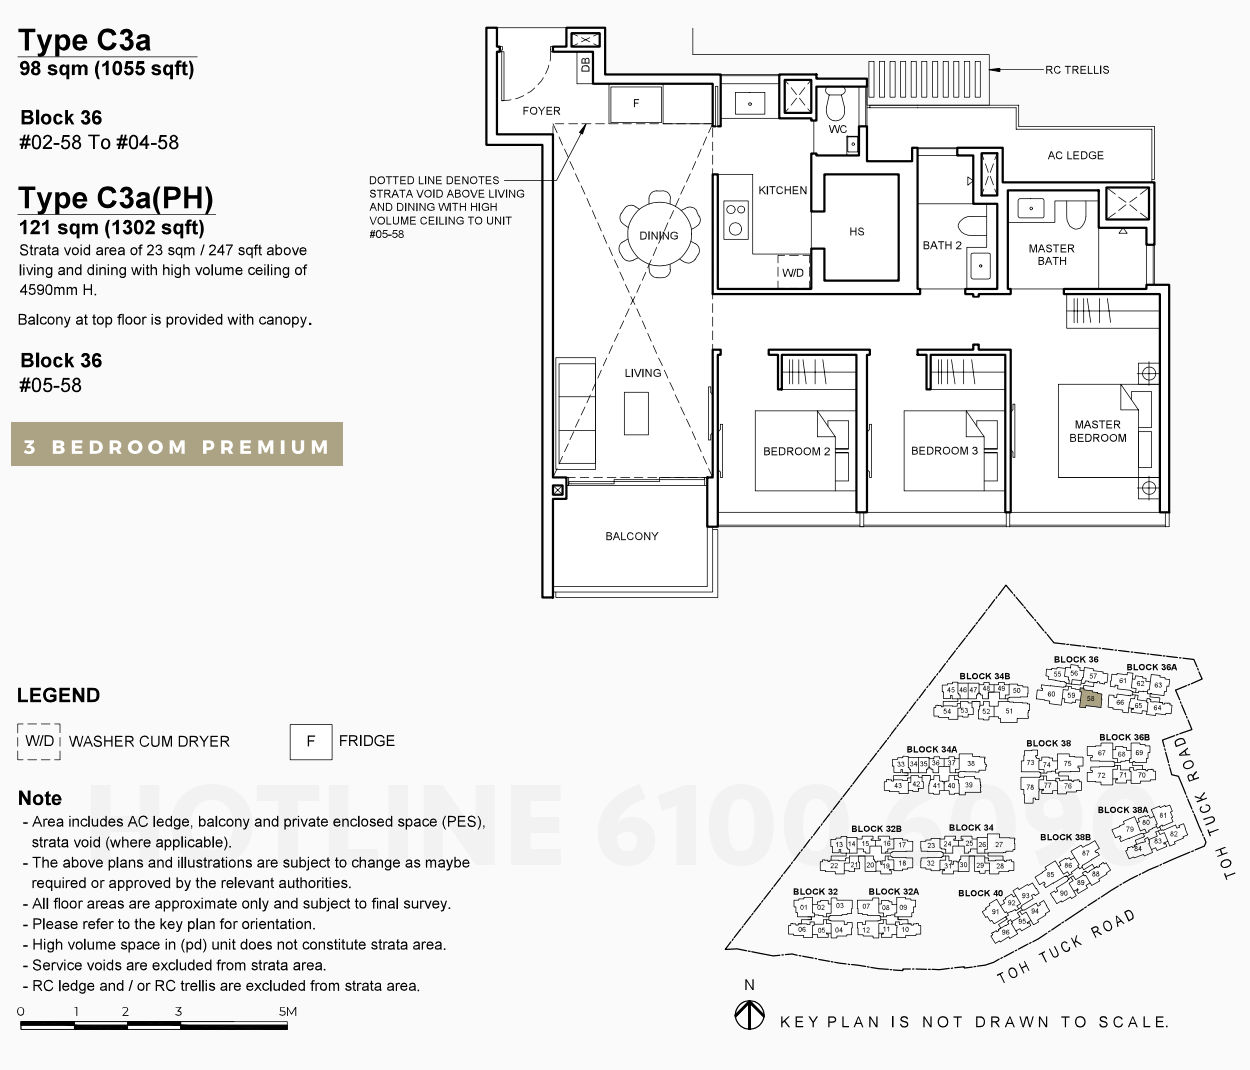 Floor Plan . 3 Bedroom Premium Type C3a